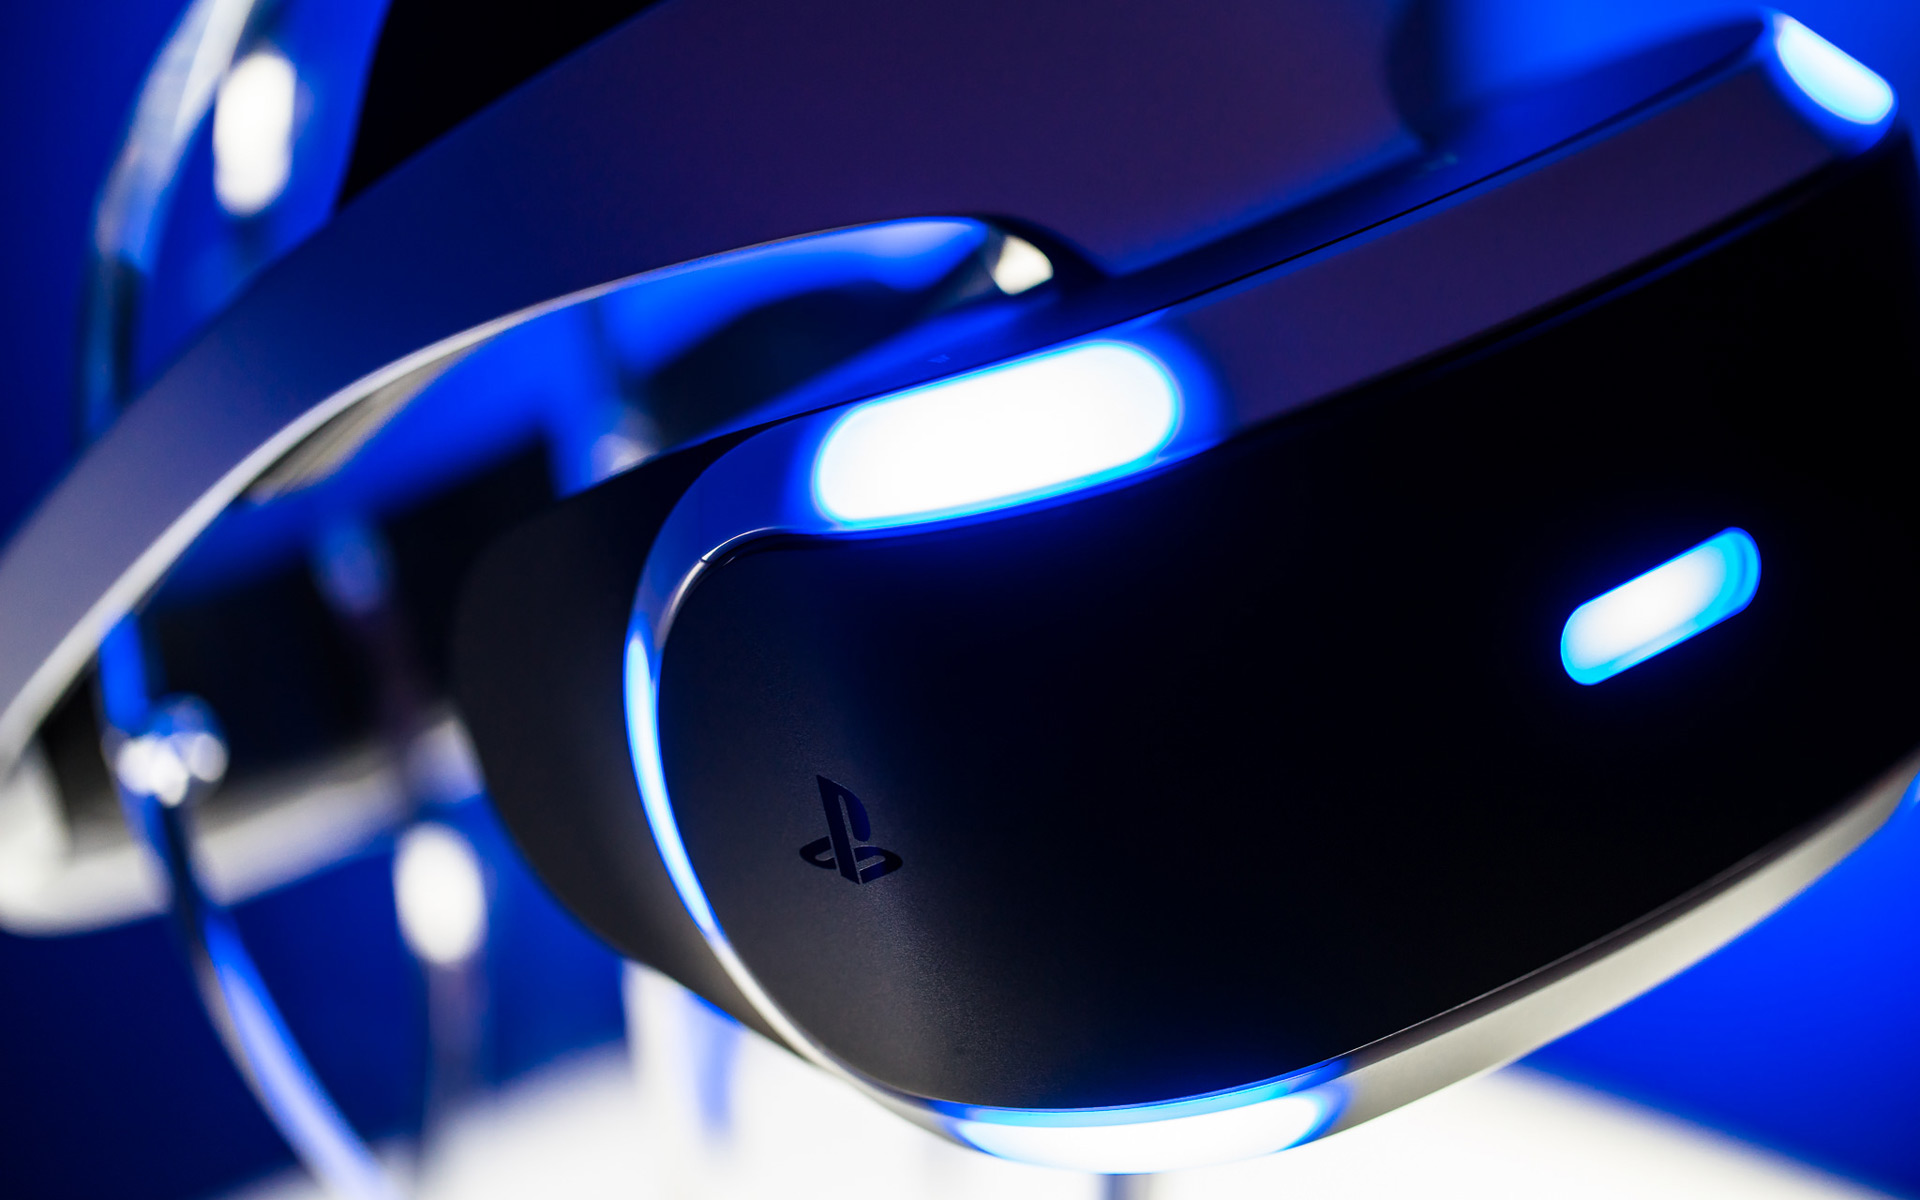 psvr.0.0 Virtual Reality Explained: Dedicated Headsets